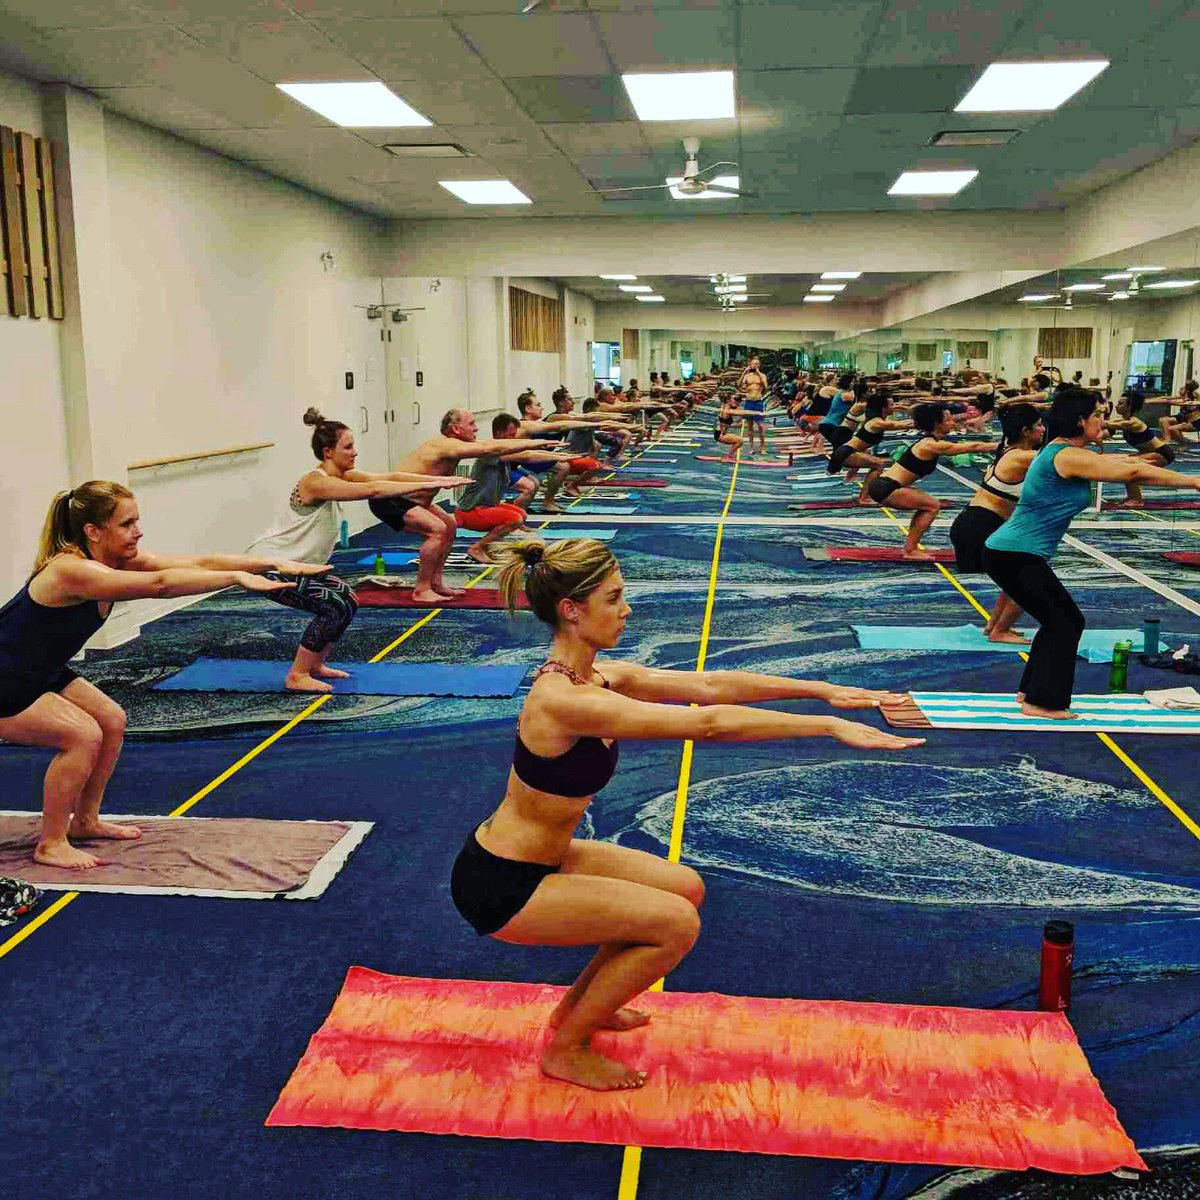 Studio X Bikram Yoga On Twitter Full Schedule All Long Weekend We Don T Reduce Classes So You Have Plenty Of Chances To Take Care Of You Saturday And Sunday 8am 10am 4pm